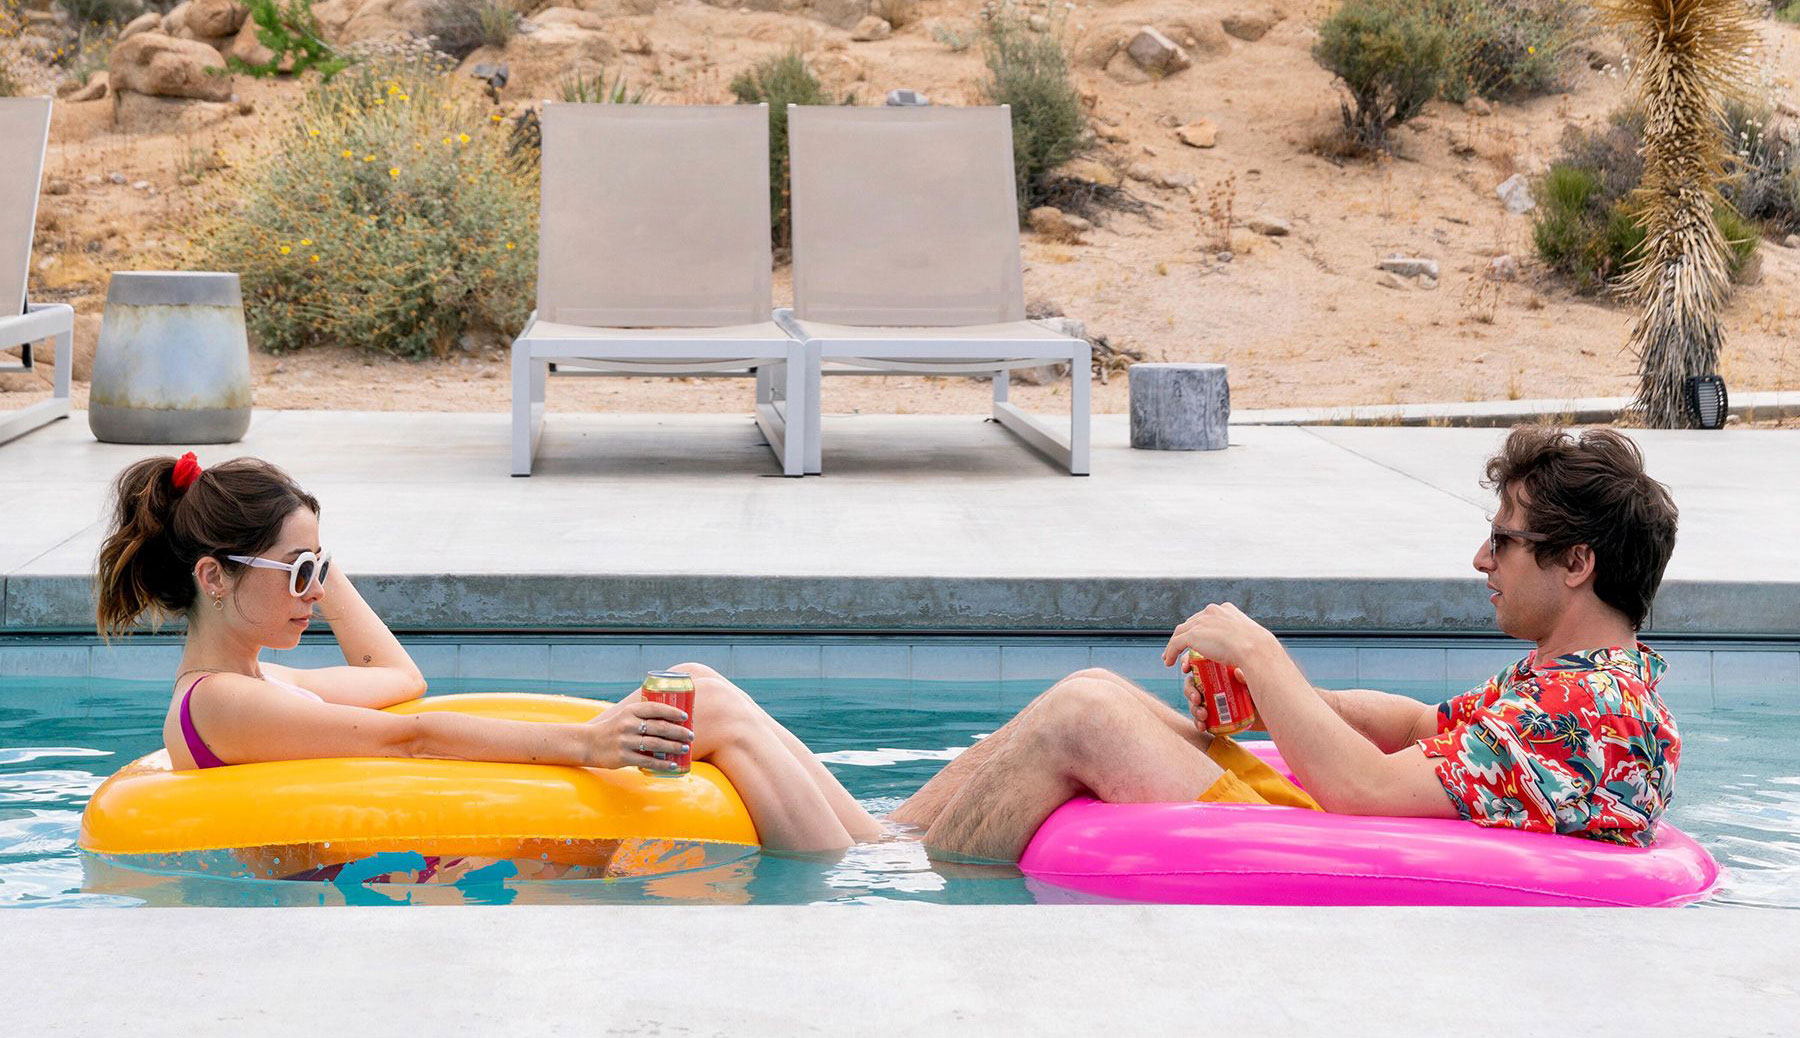 """Andy Samberg and Cristin Milioti in """"Palm Springs"""""""